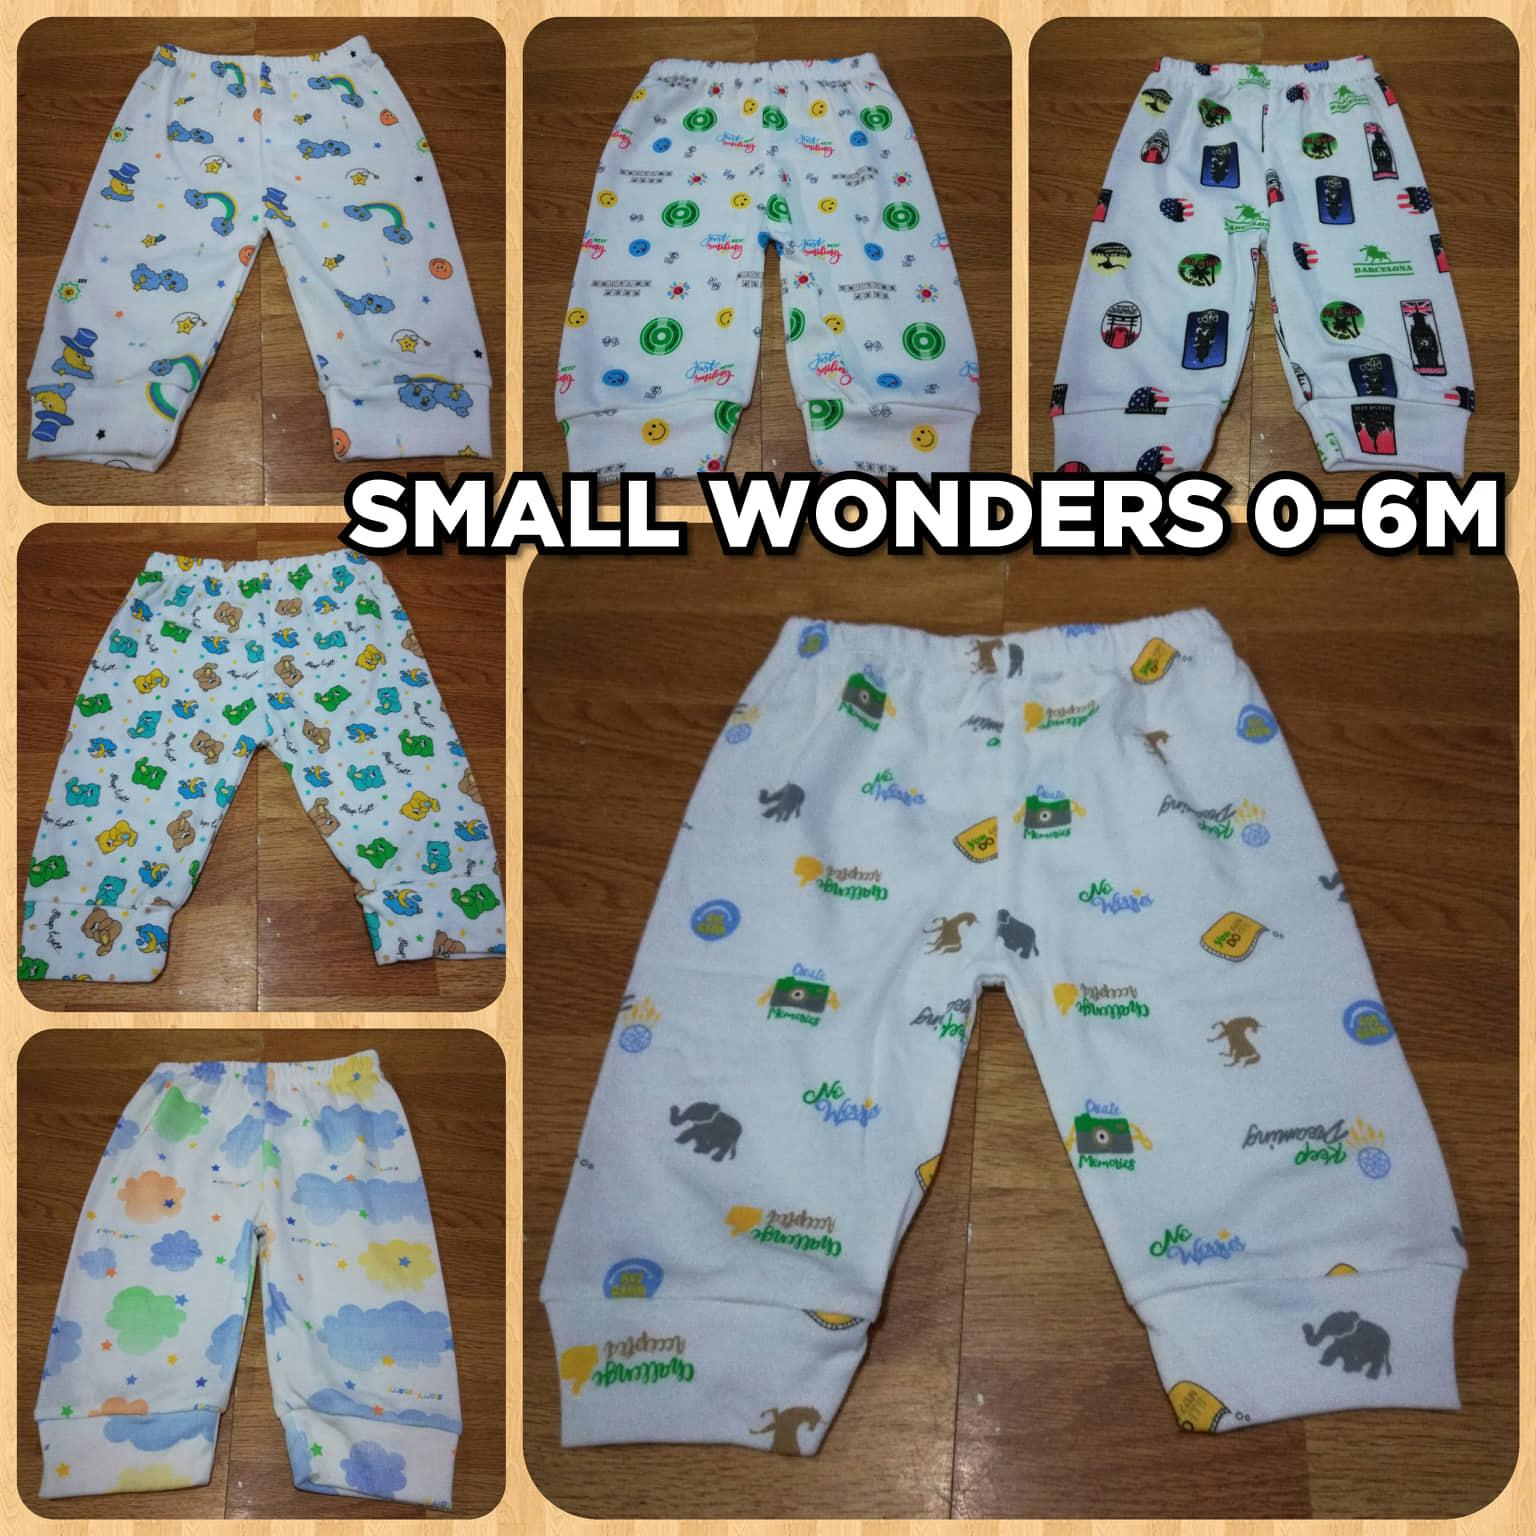 6pcs Small Wonders Pajama For Boys By Jmk.